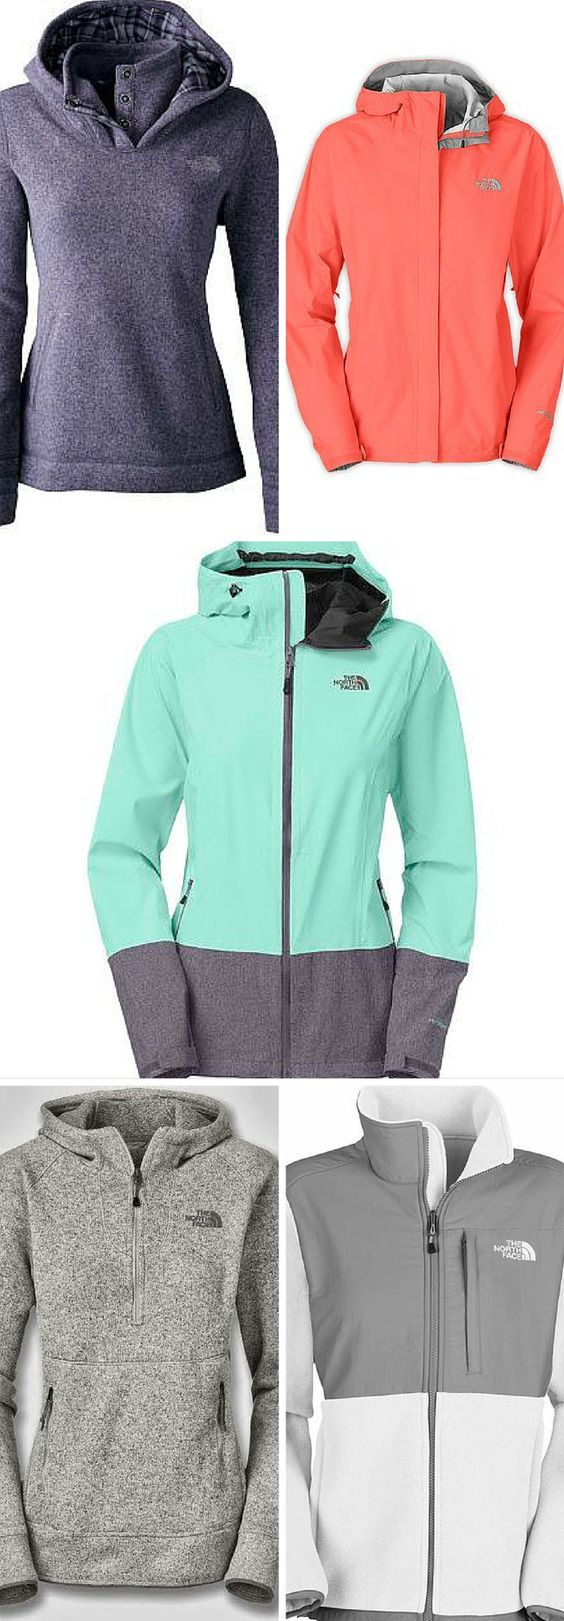 Click the image to install the FREE app and shop North Face and other brands at up to 70% off now. Poshmark is featured in Good Morning America & Cosmopolitan.